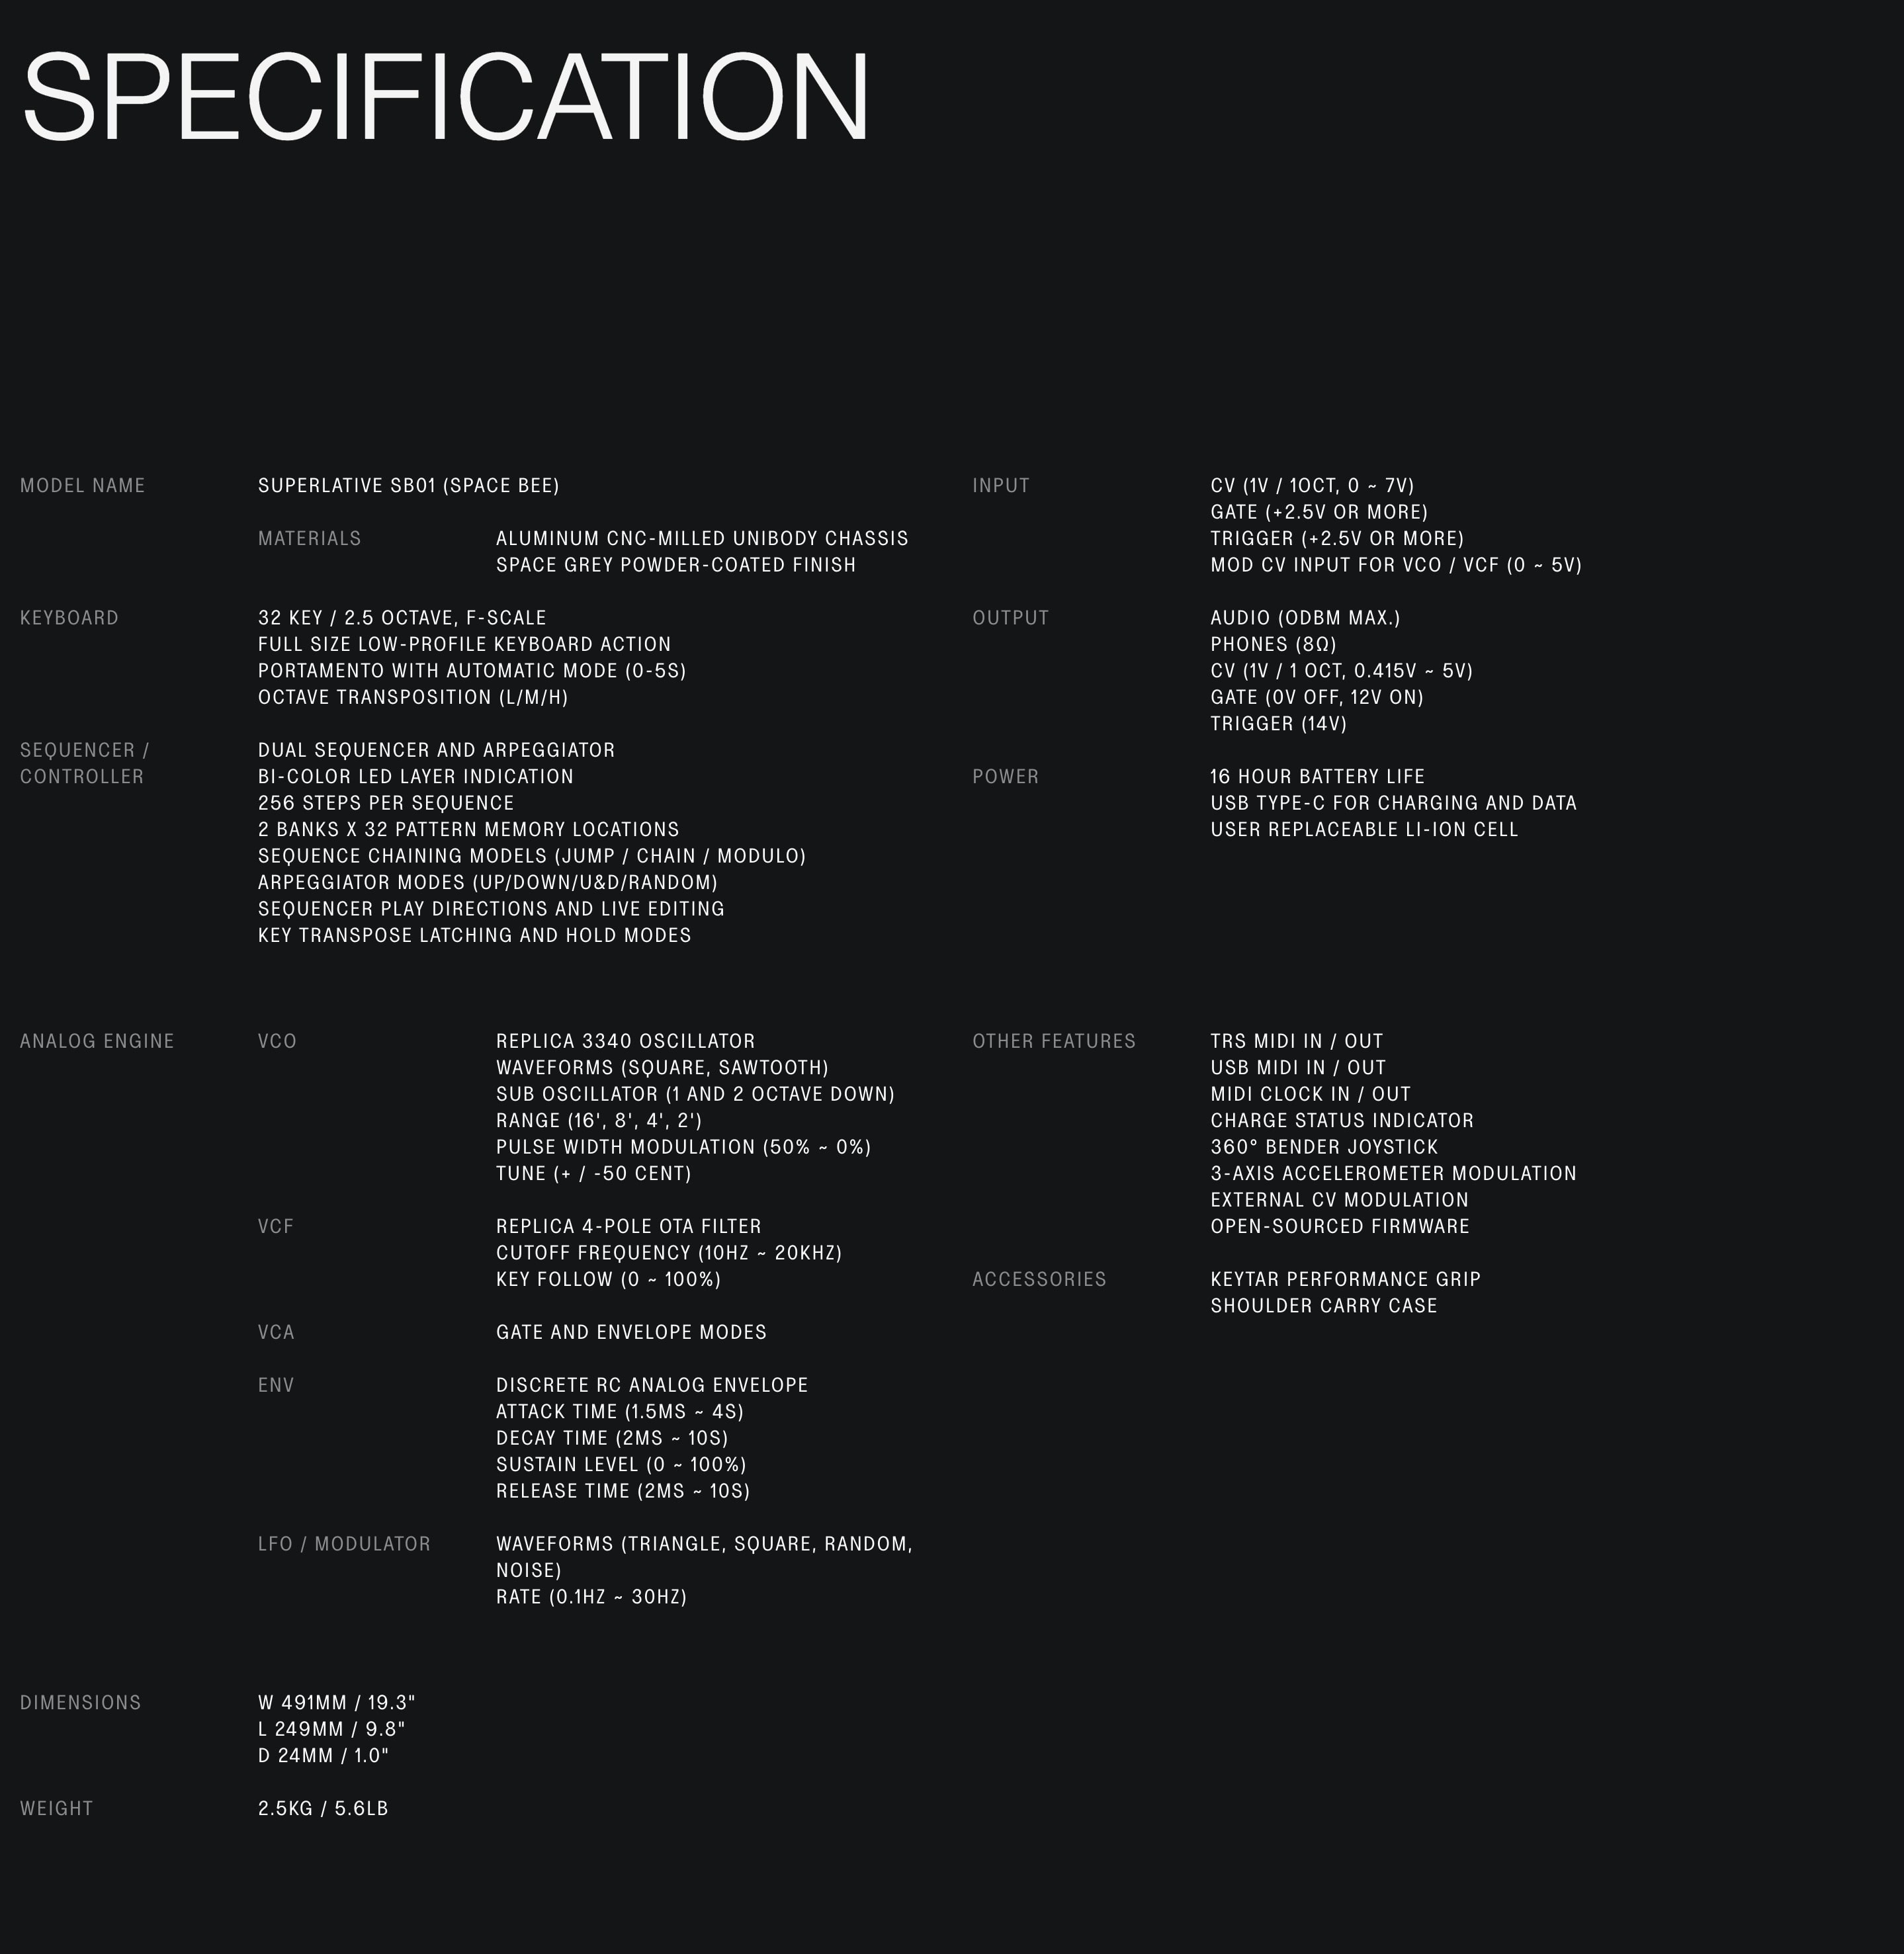 Product Specification Table with Technical Information